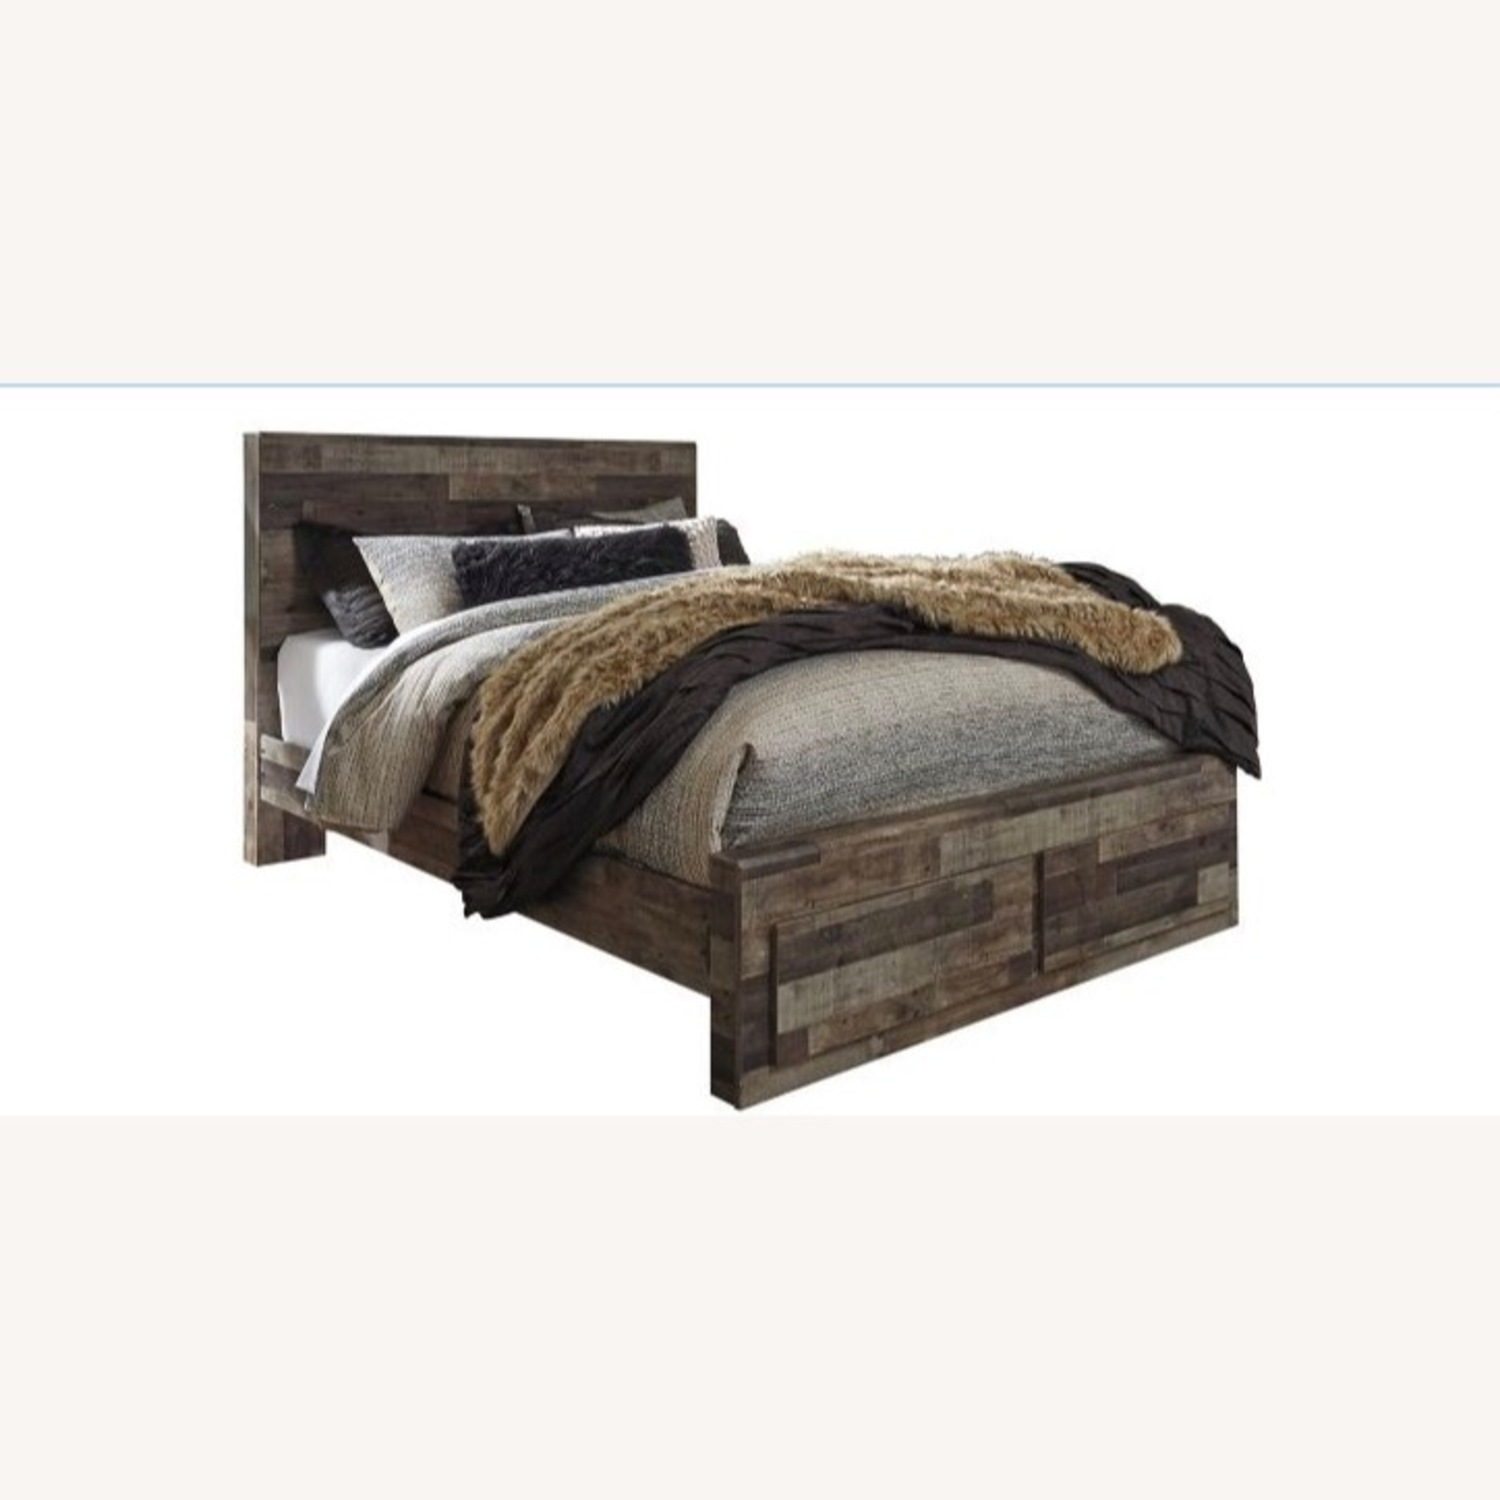 Raymour & Flanigan Ainsworth Queen Size Bed - image-1